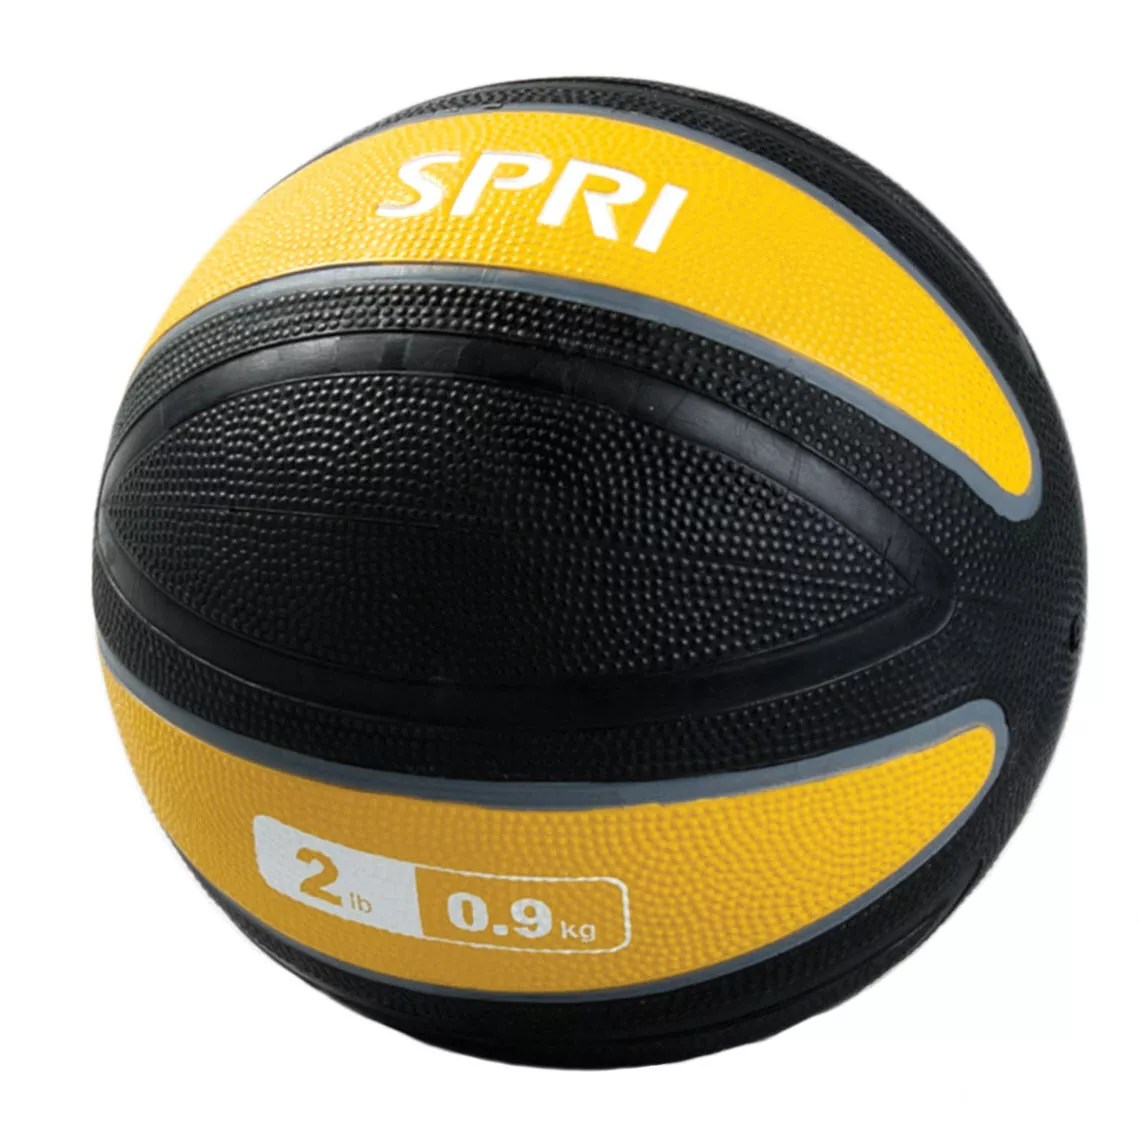 Spri Xerball 2 Lb. Medicine Ball Dick' Sporting Goods